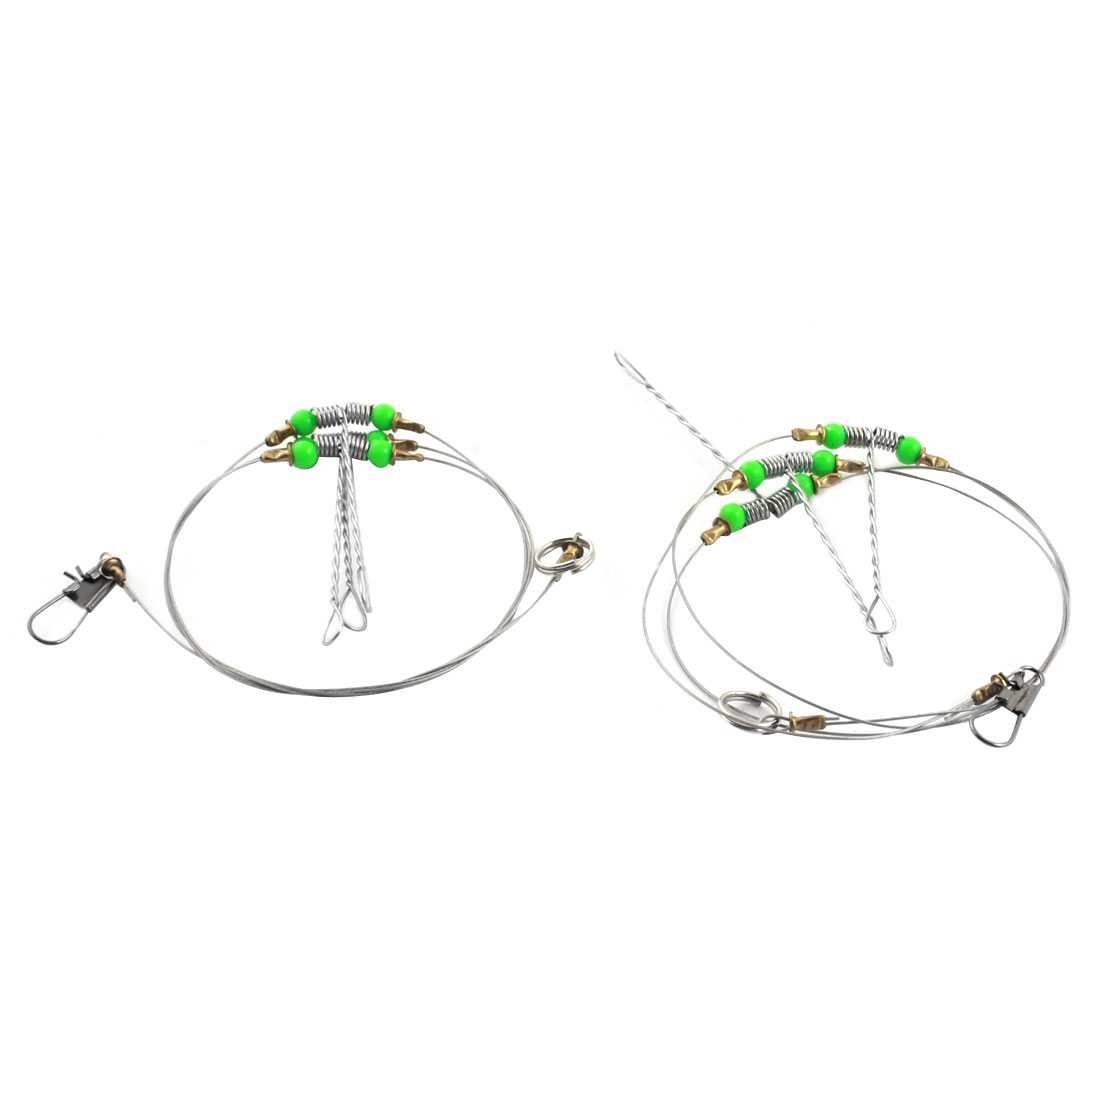 2 Pcs 58cm Stainless Steel Fishing Trace Fish Wire Spinner Leader w Interlock Snap